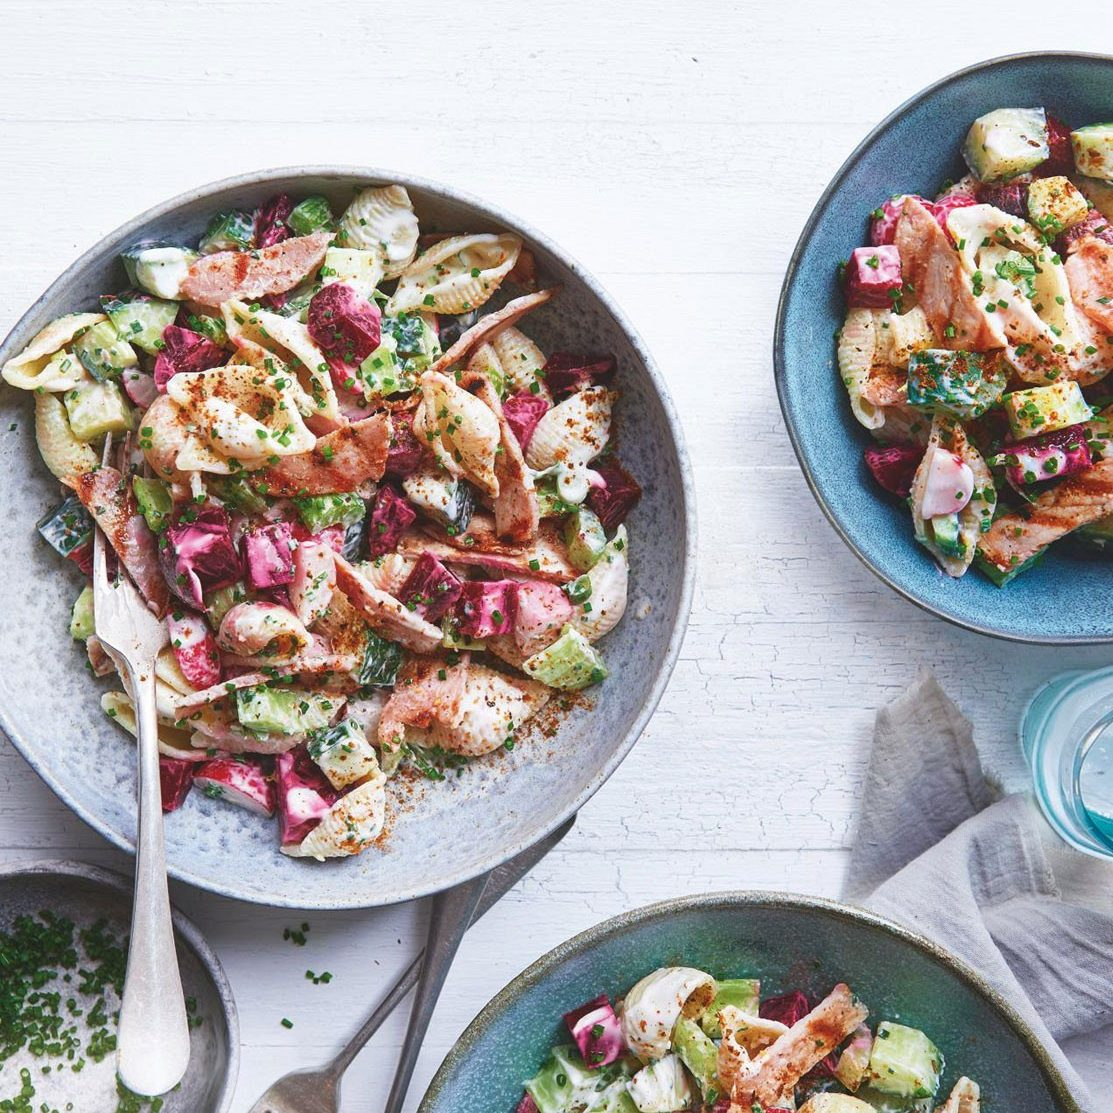 SW recipe: Bacon and pasta salad with ranch-style dressing